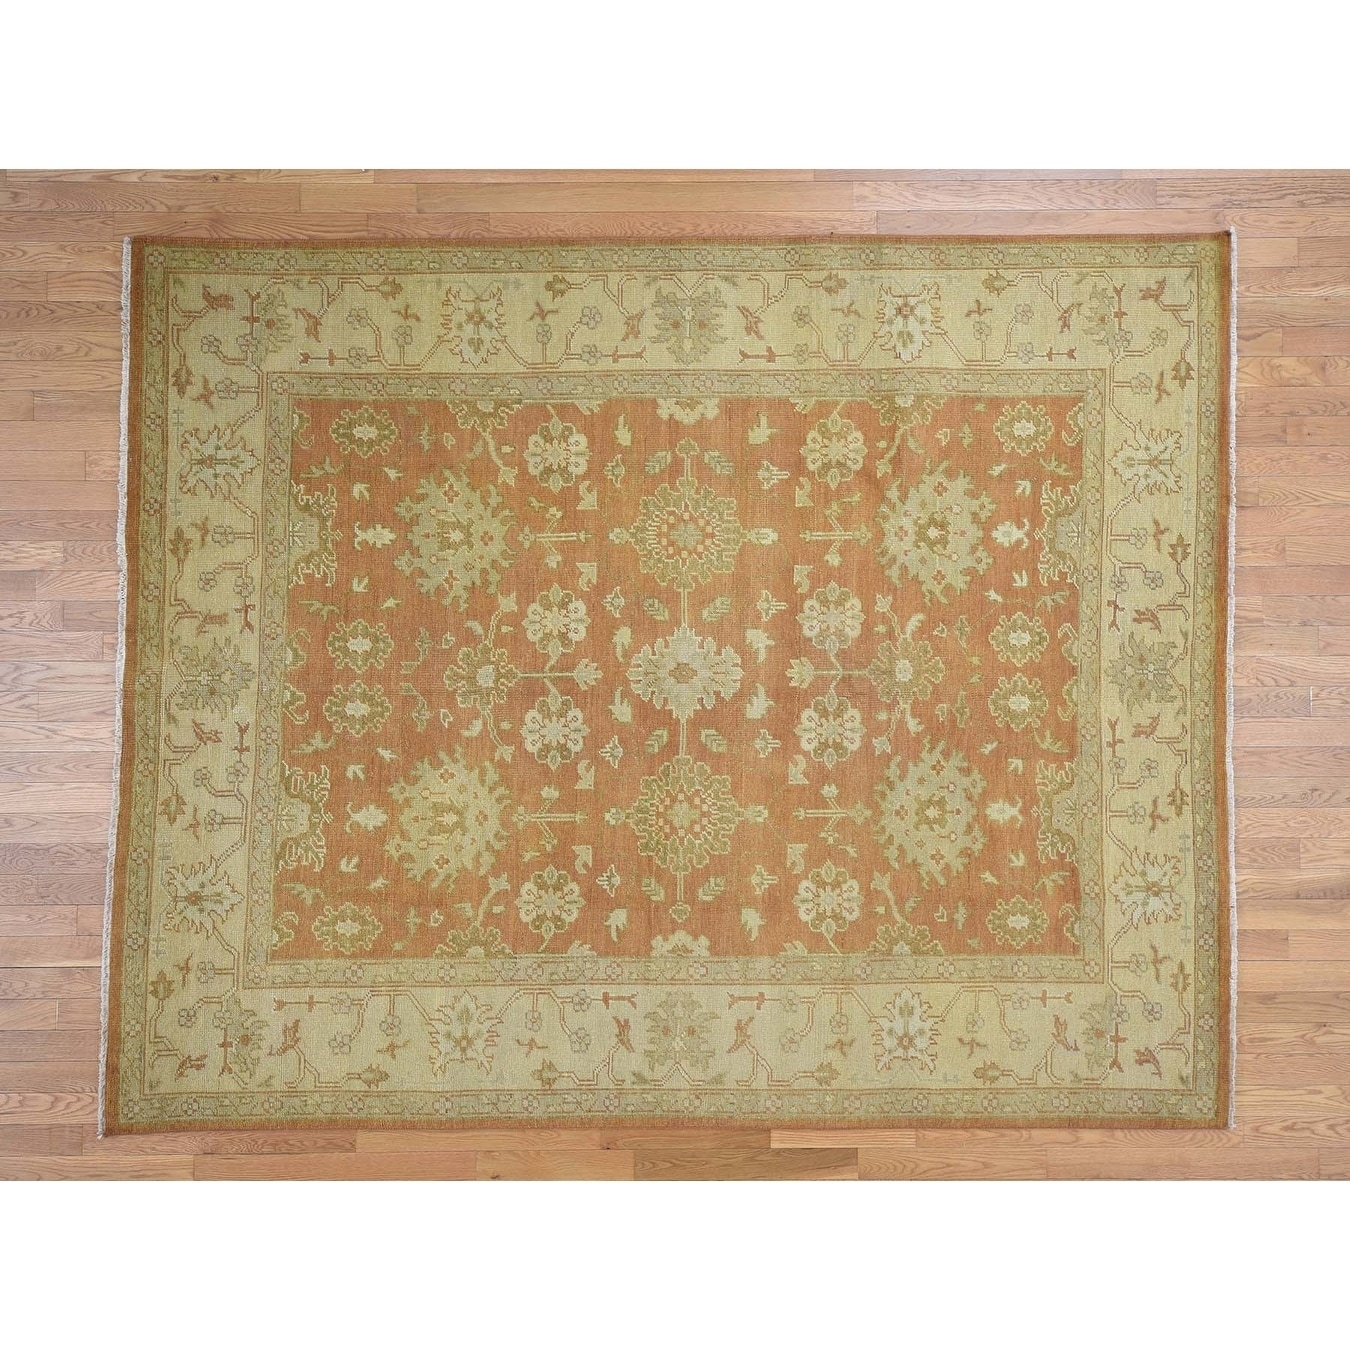 Hand Knotted Orange Oushak And Peshawar with Wool Oriental Rug - 8 x 10